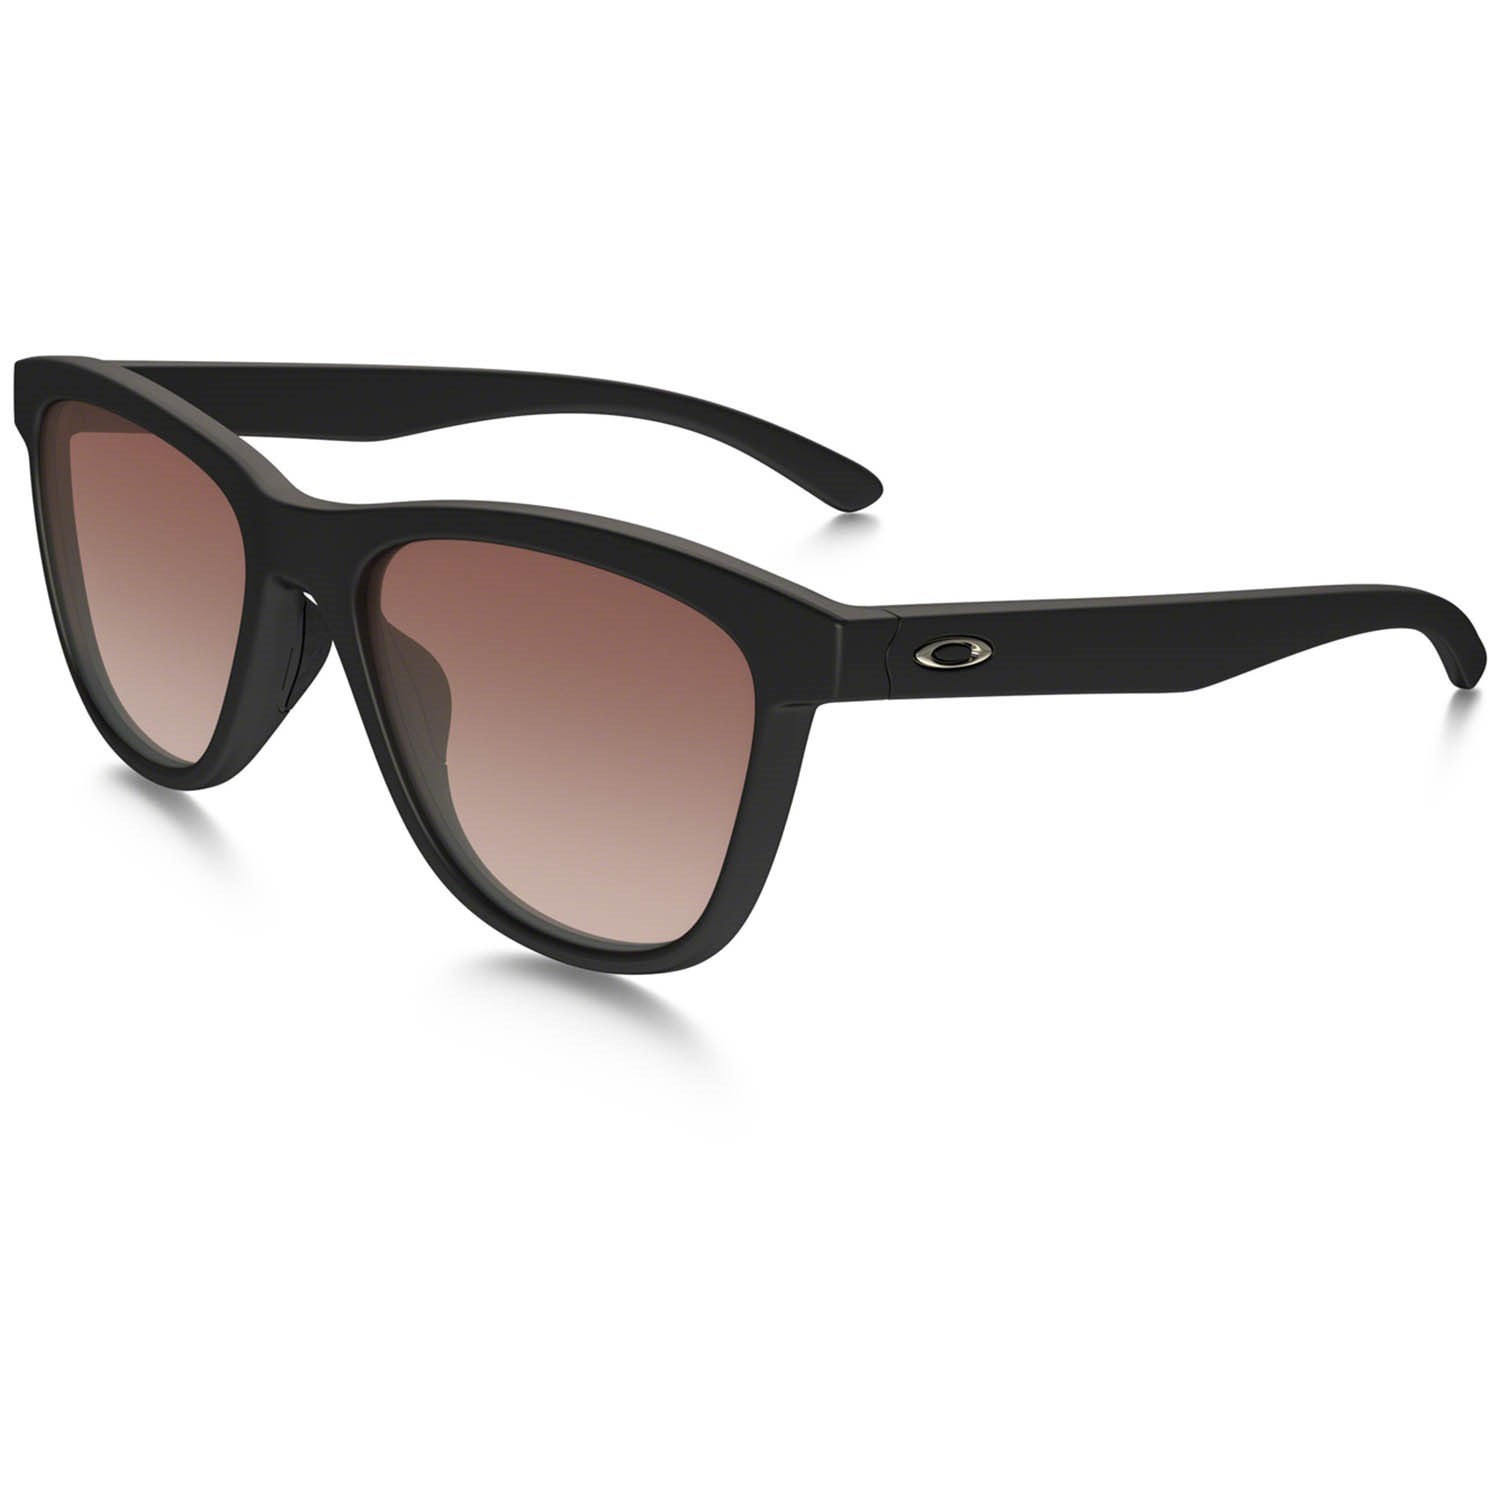 oakley sunglasses for womens  oakley moonlighter sunglasses women's $120.00 $170.00 available in store only